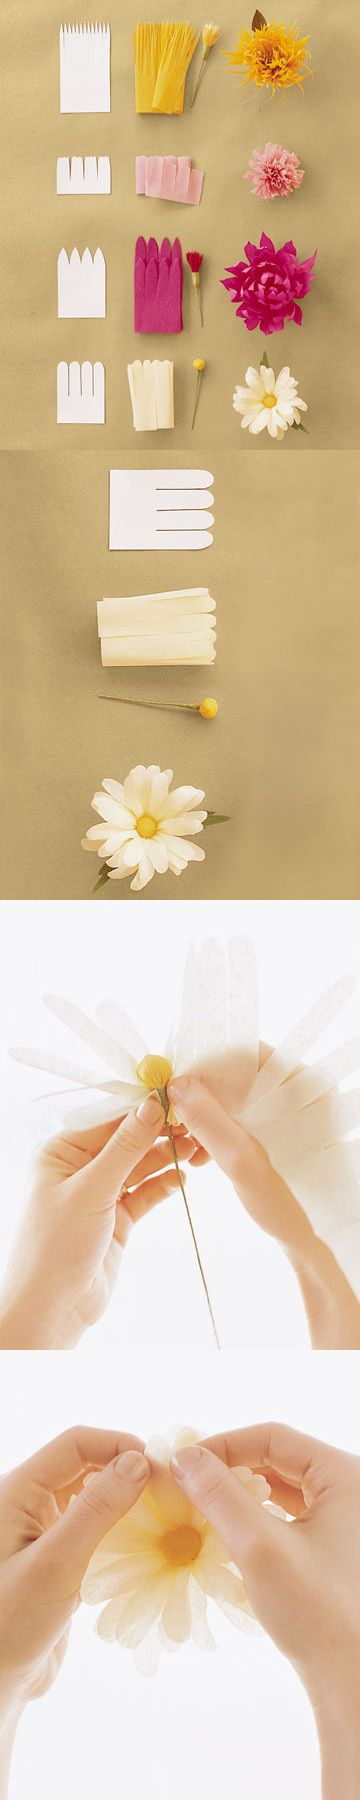 DIY: paper flower tutorials http://www.marthastewartweddings.com/231065/how-make-crepe-paper-flowers/@center/272429/diy-weddings#slide_9 #paper_crafting #flowers